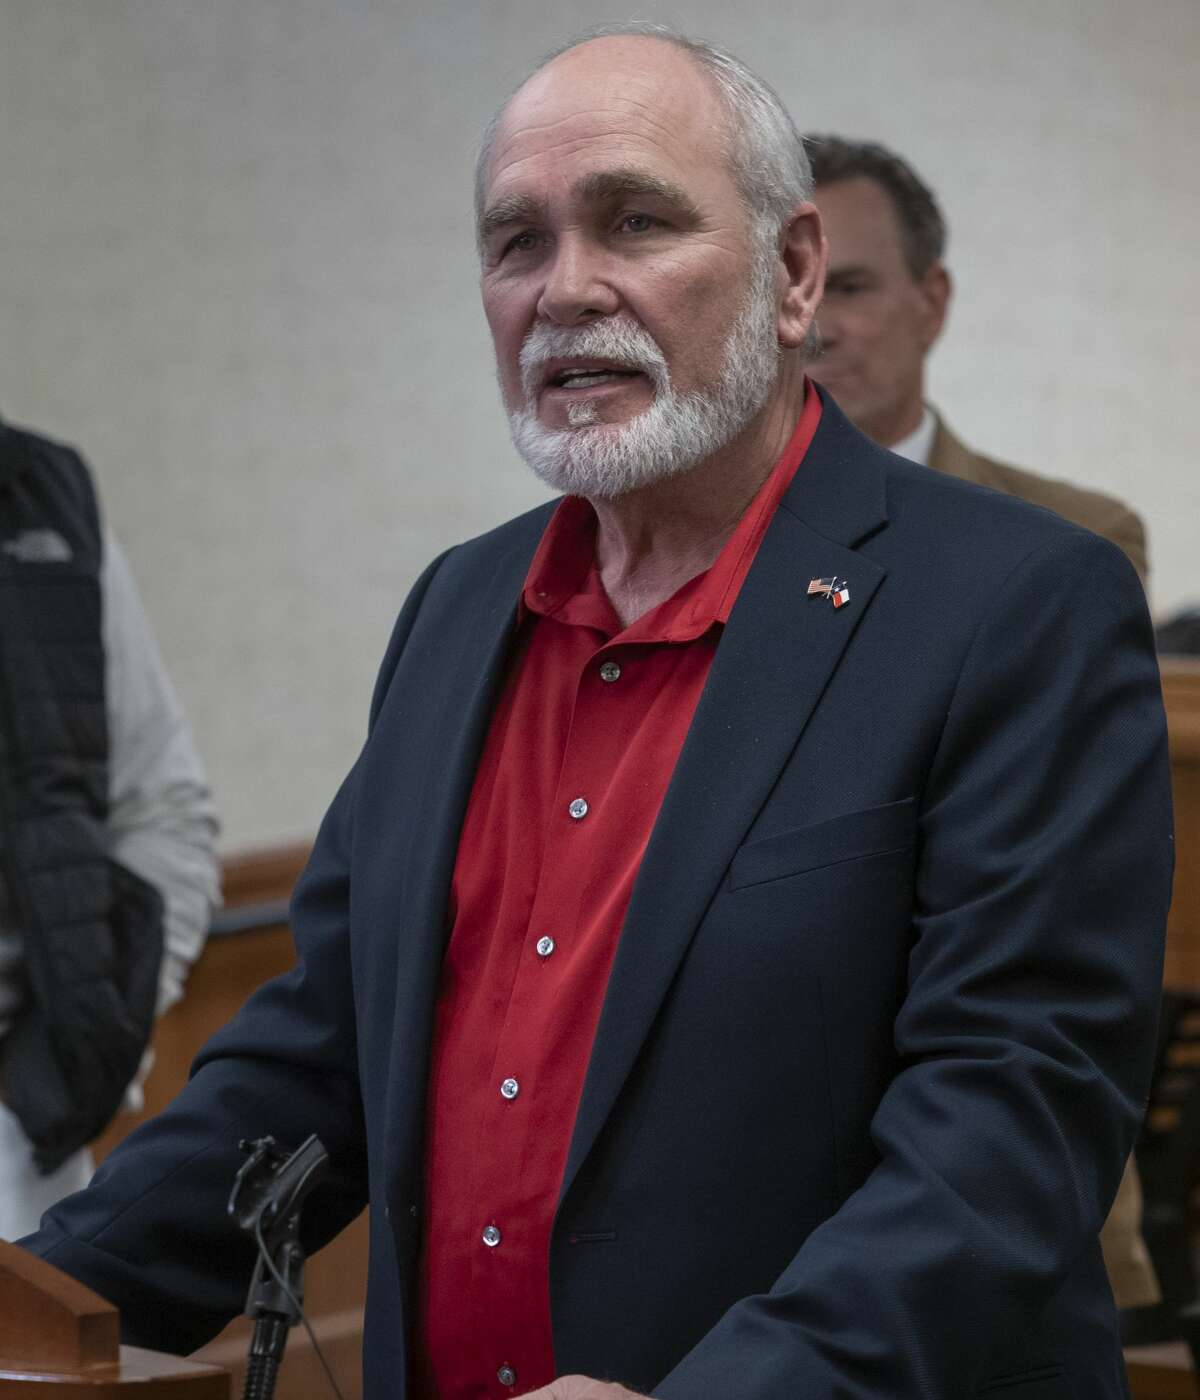 Midland County Judge Terry Johnson, answers questions 03/20/2020 during a press conference at the Midland County Annex building. Tim Fischer/Reporter-Telegram